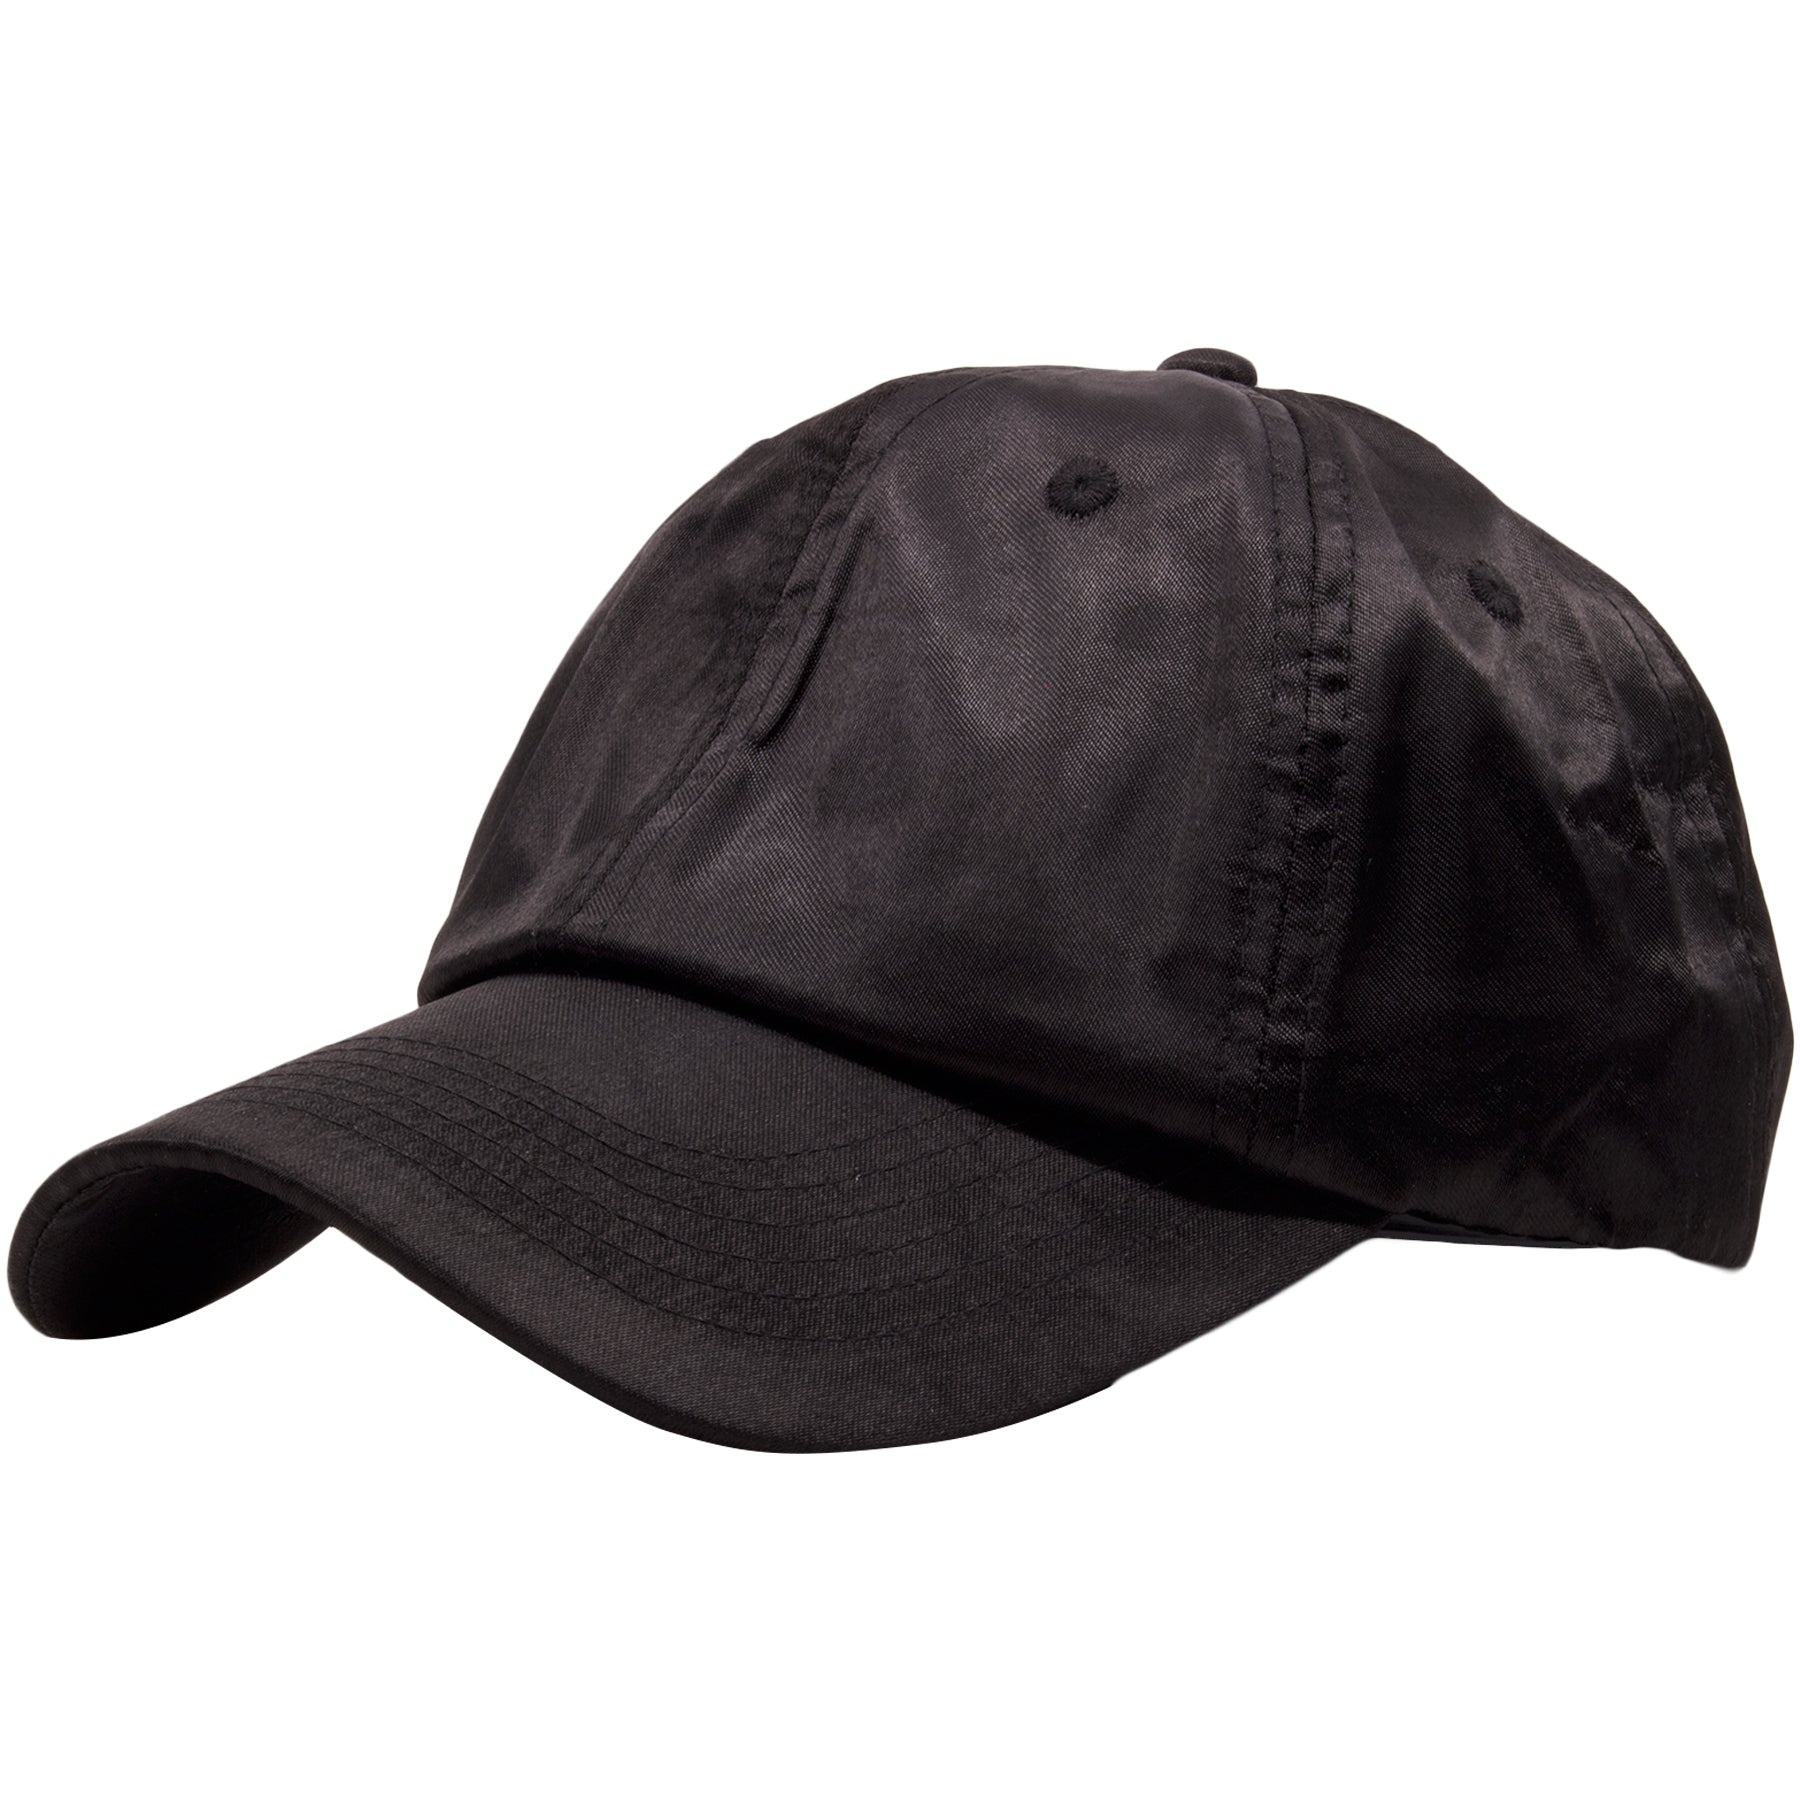 09ffa20129e60 ... the black satin blank adjustable dad hat has a soft unstructured crown  and a bent brim ...